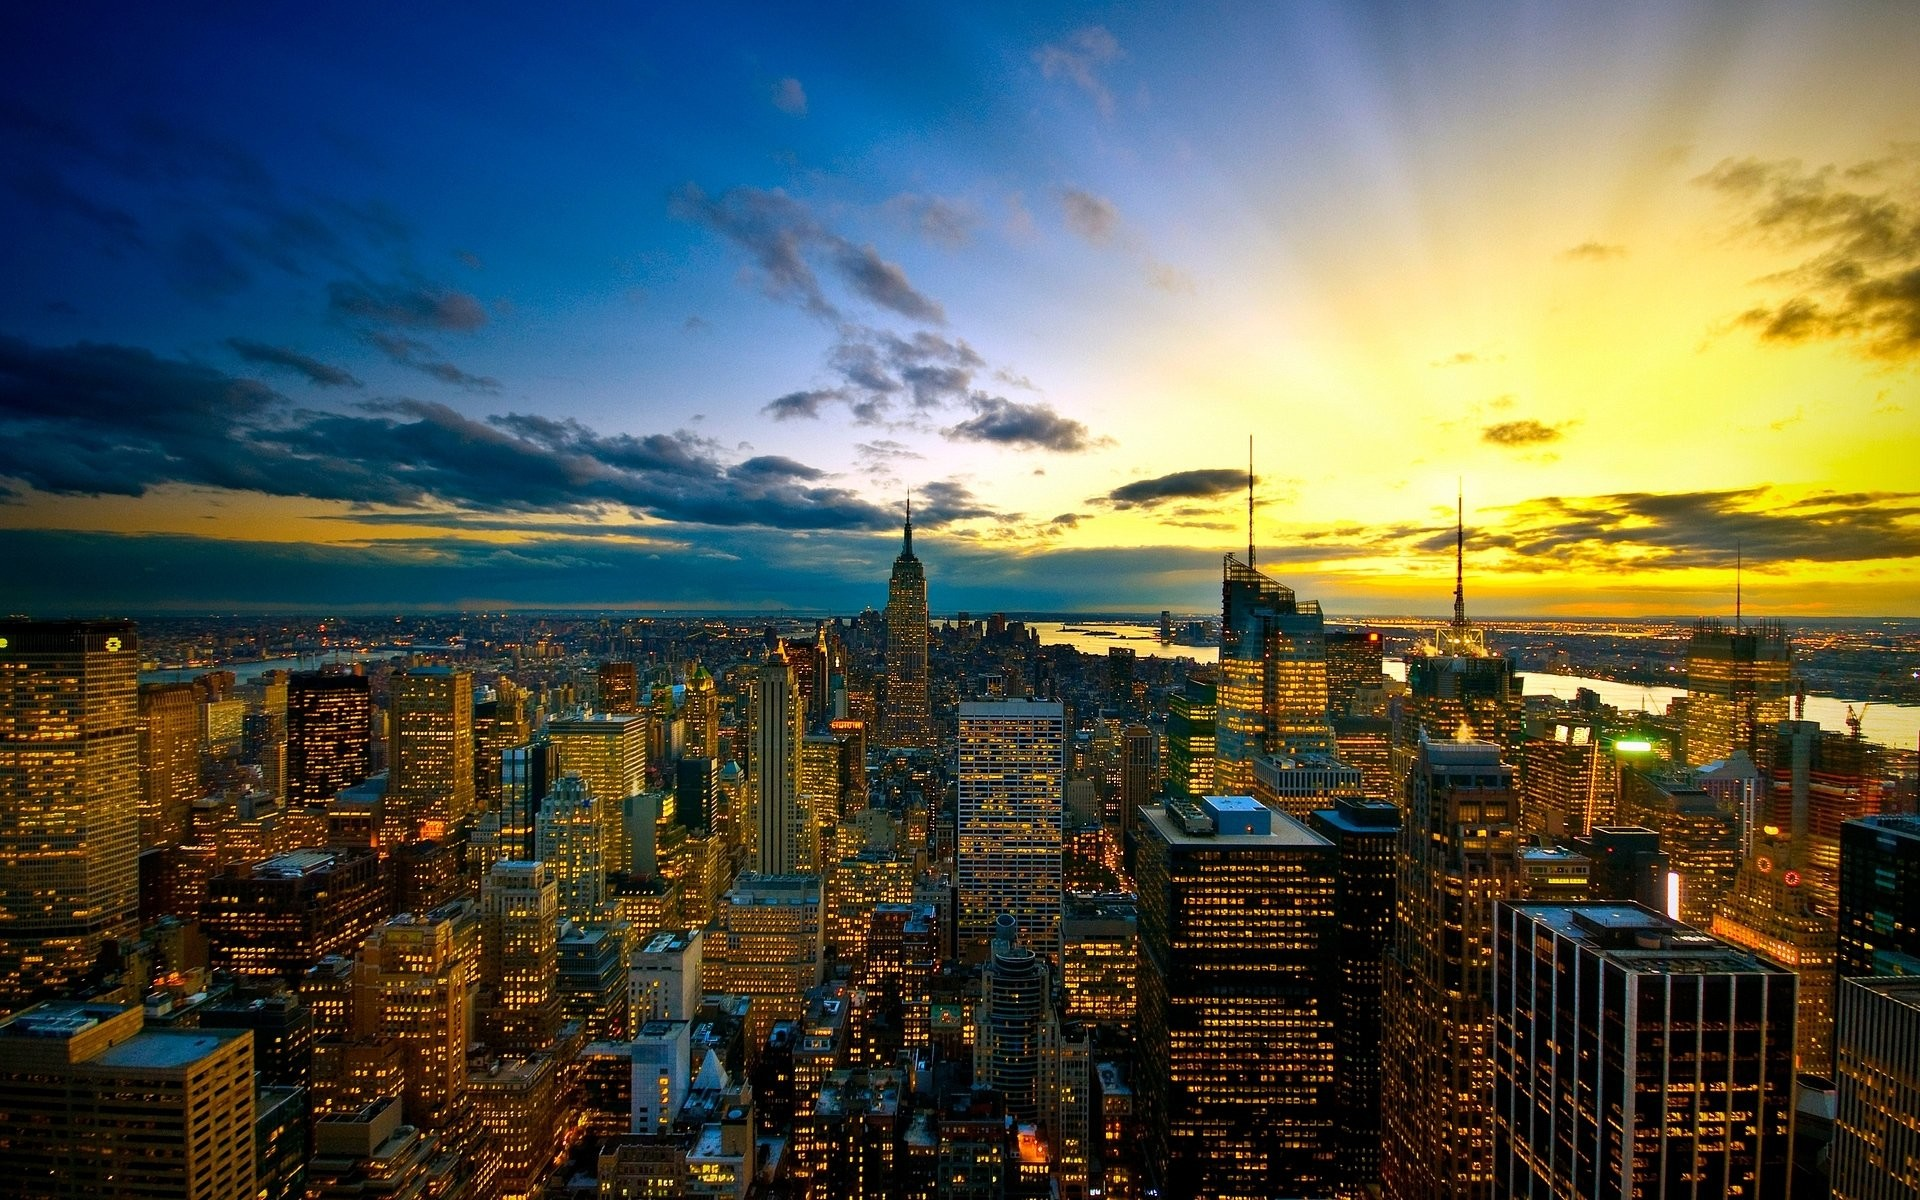 1920x1200 Sunset Cityscape City Empire State Building USA New York Wallpapers HD Desktop And Mobile Backgrounds